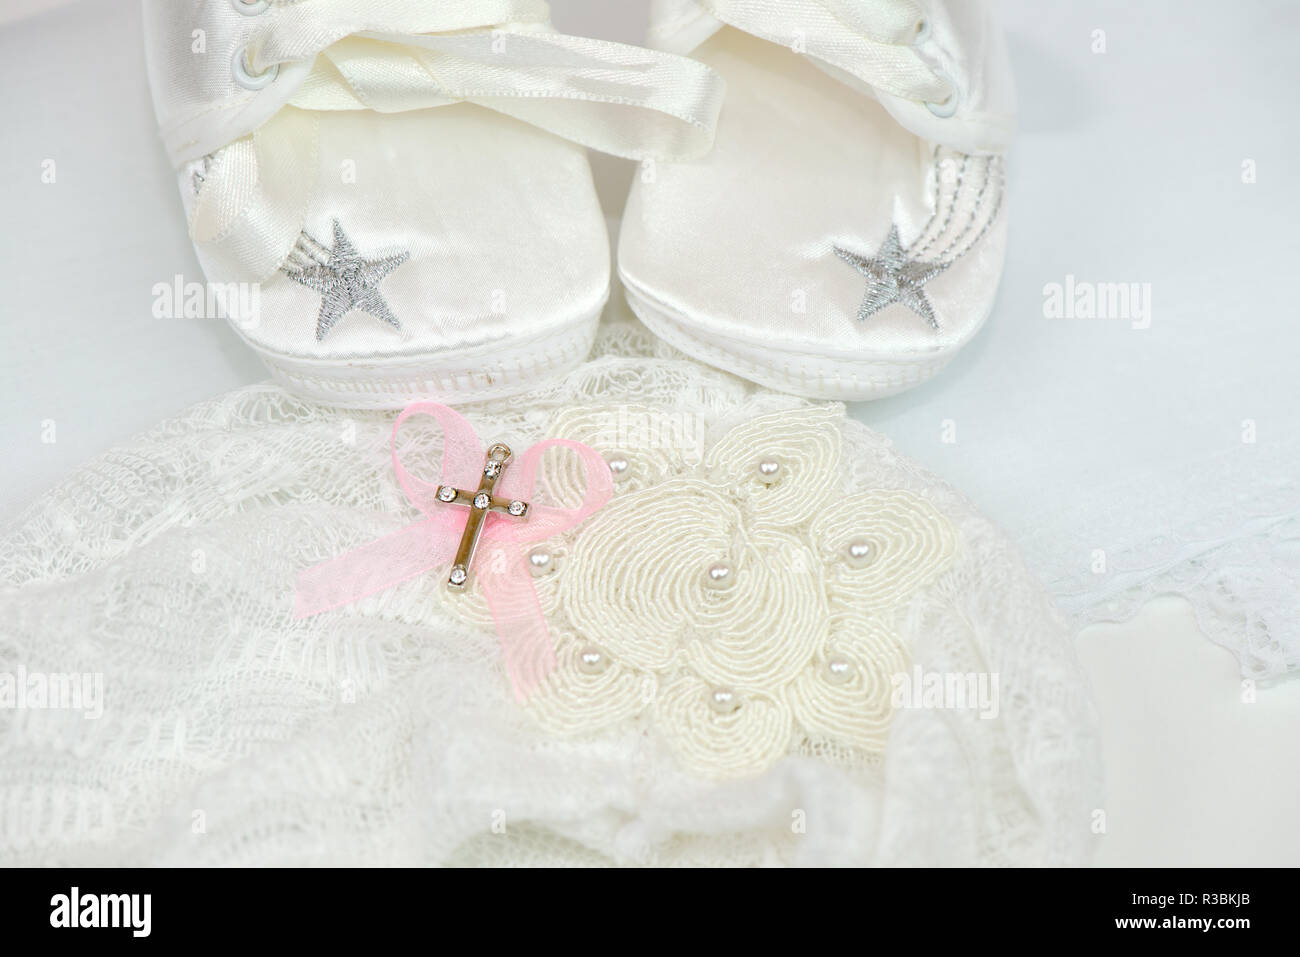 Accessories for christening baby shoes and cross - Stock Image